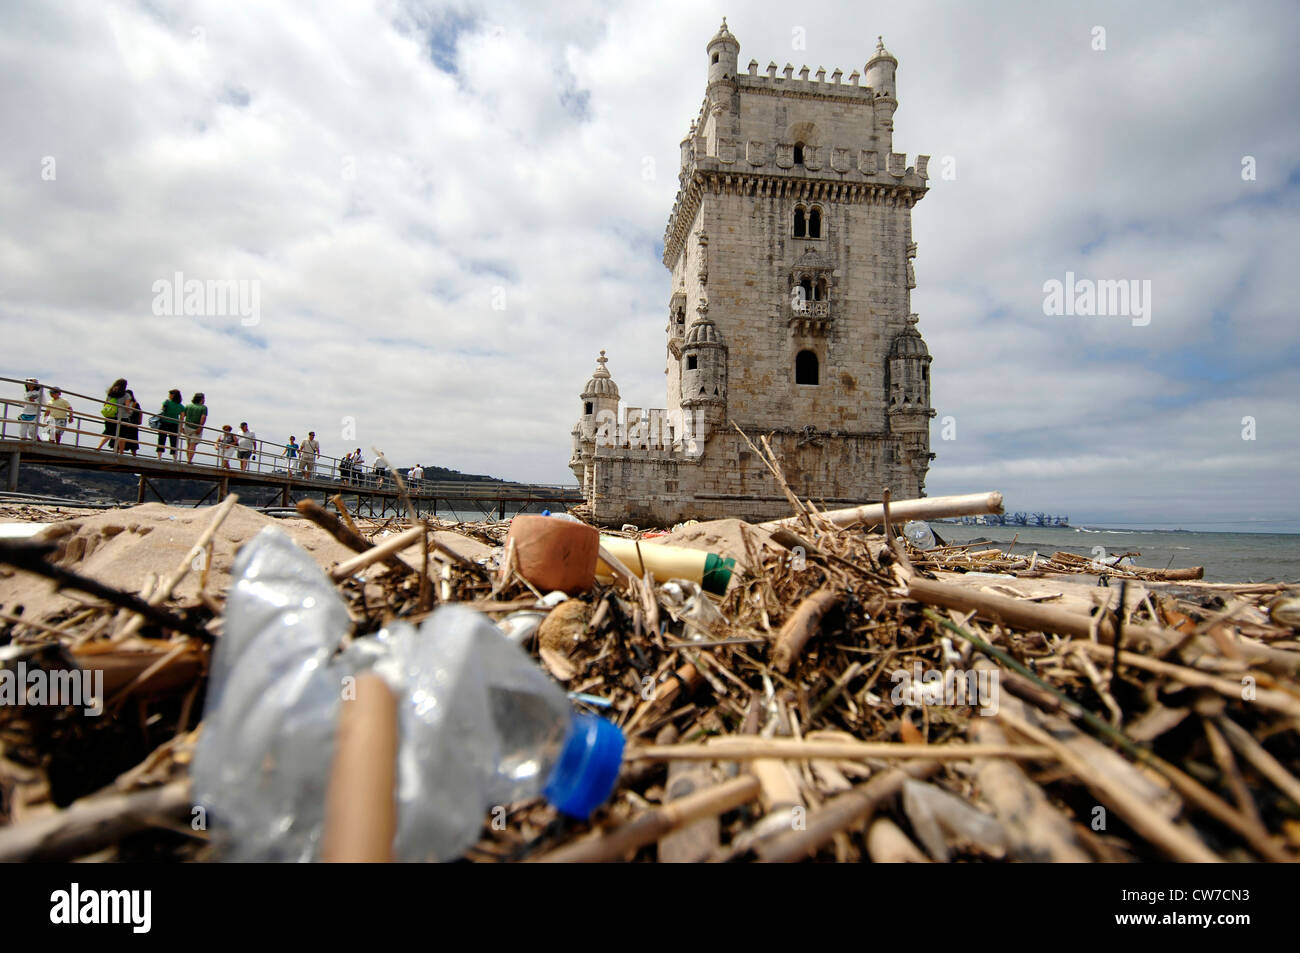 tower of Belem with dirty beach in the foreground, Portugal, Lisbon - Stock Image